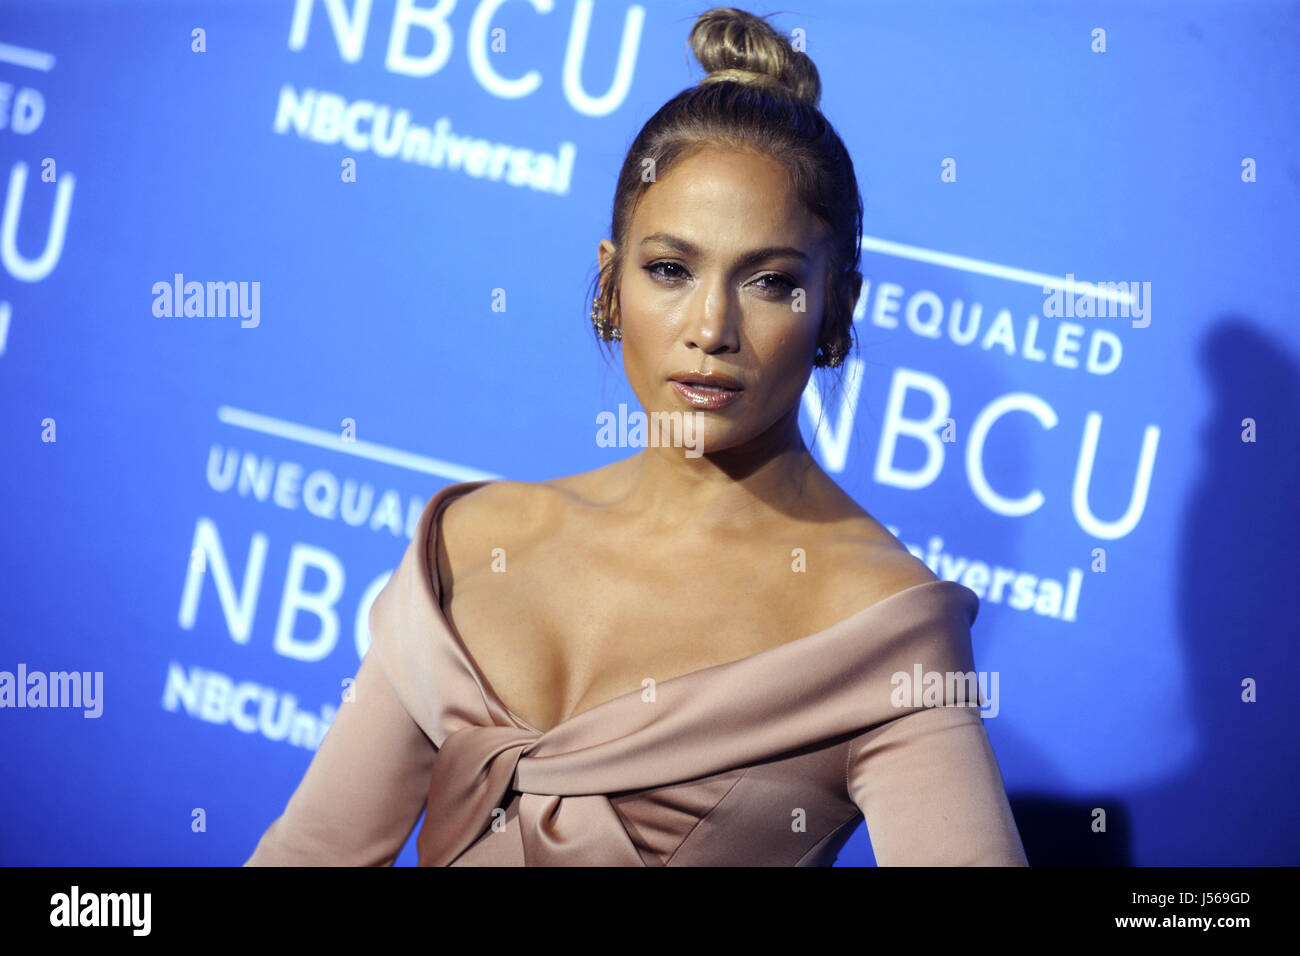 Jennifer Lopez nimmt am 15. Mai 2017 2017 NBCUniversal Upfront in der Radio City Music Hall in New York City an. Stockbild